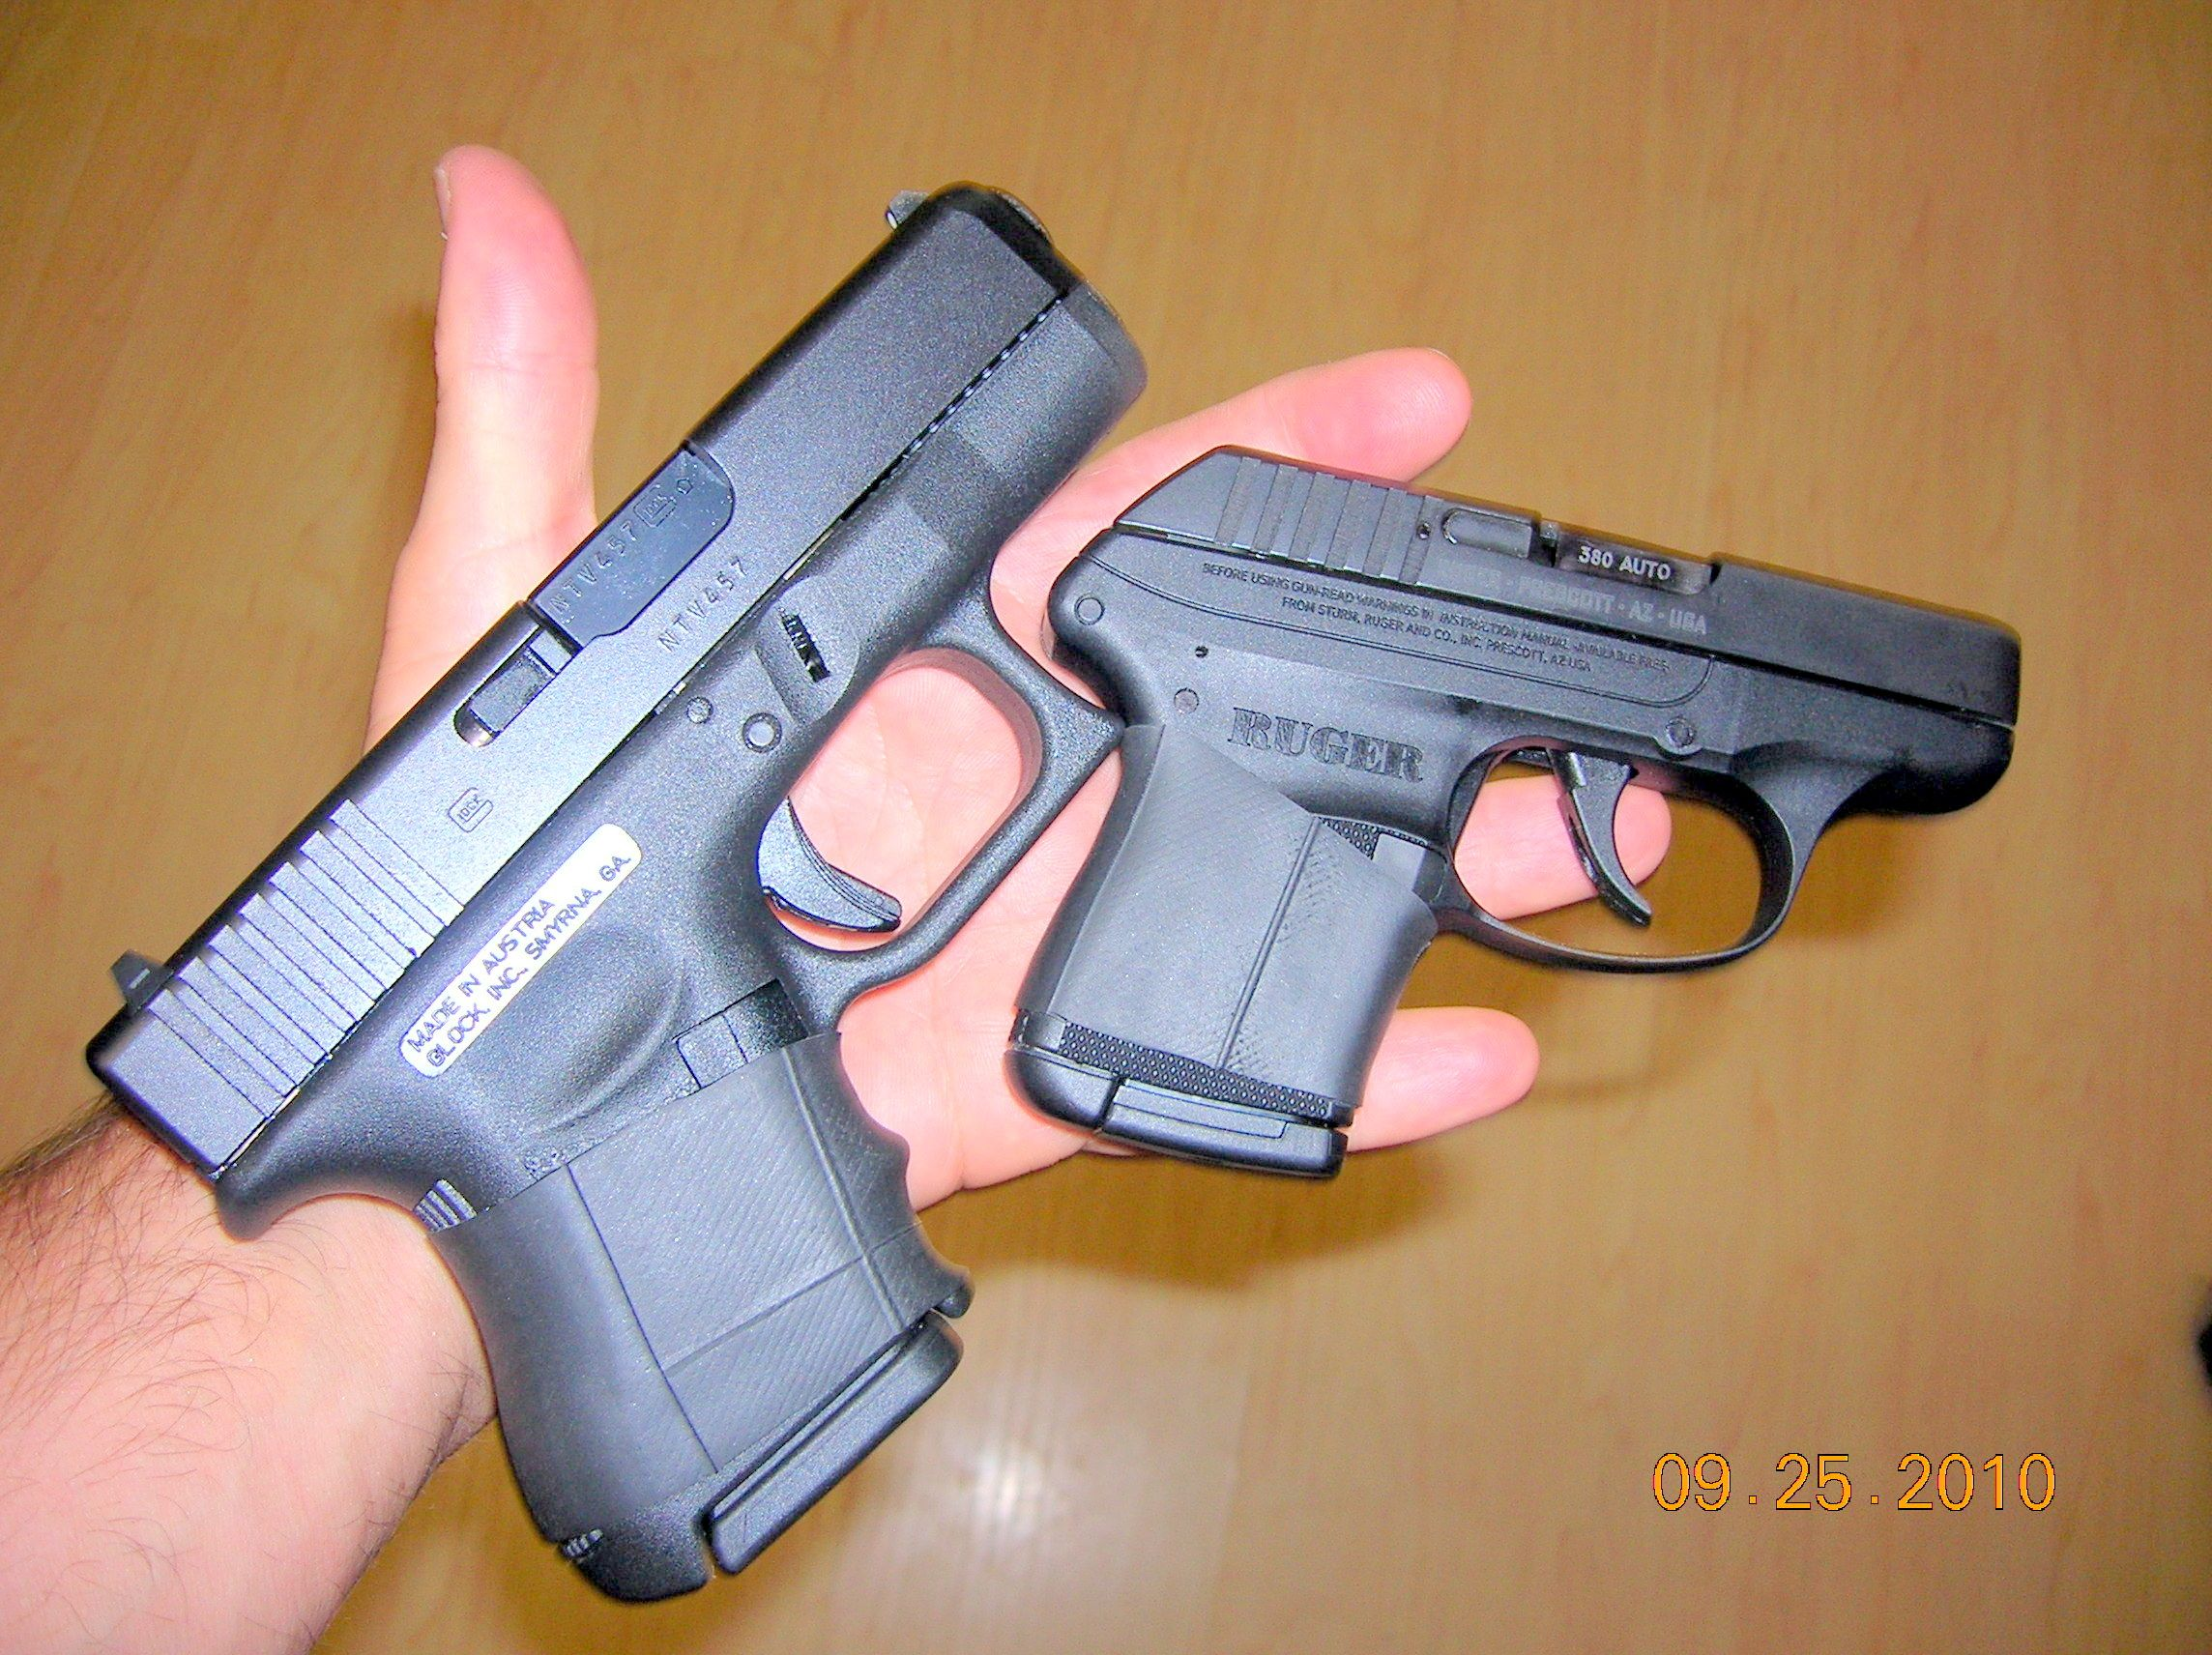 glock 26 vs ruger lcp size visual comparison i have both of these